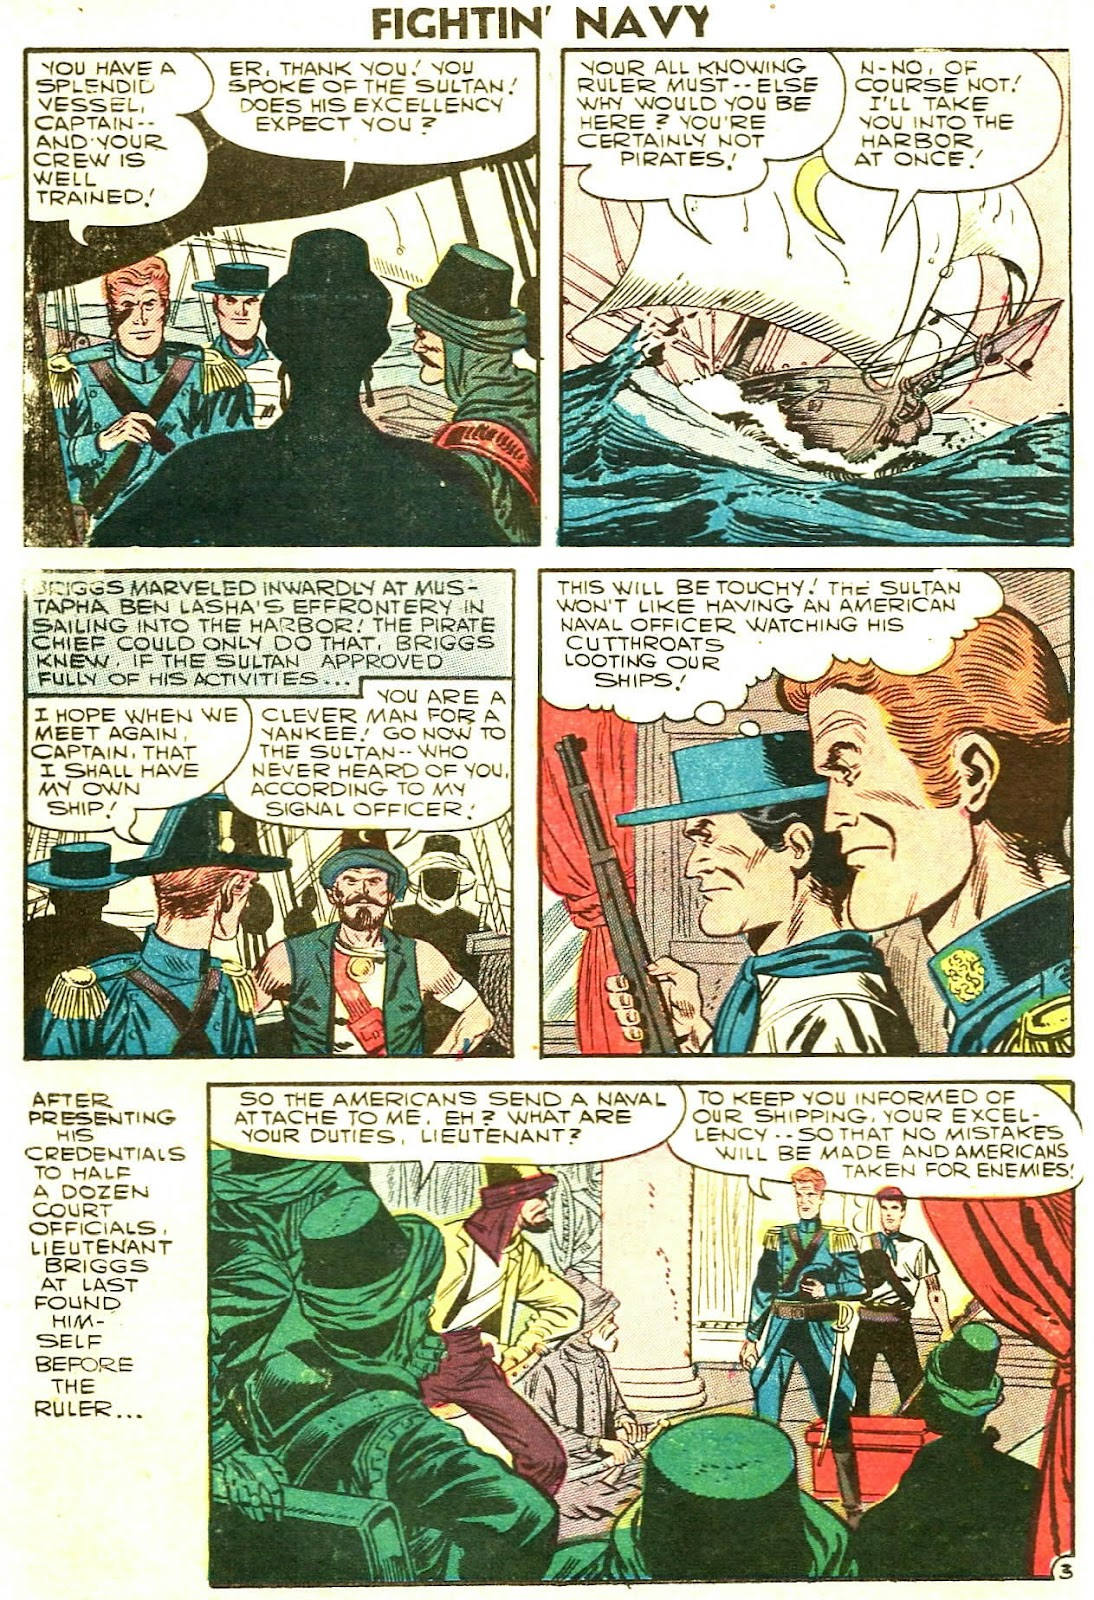 Read online Fightin' Navy comic -  Issue #78 - 26